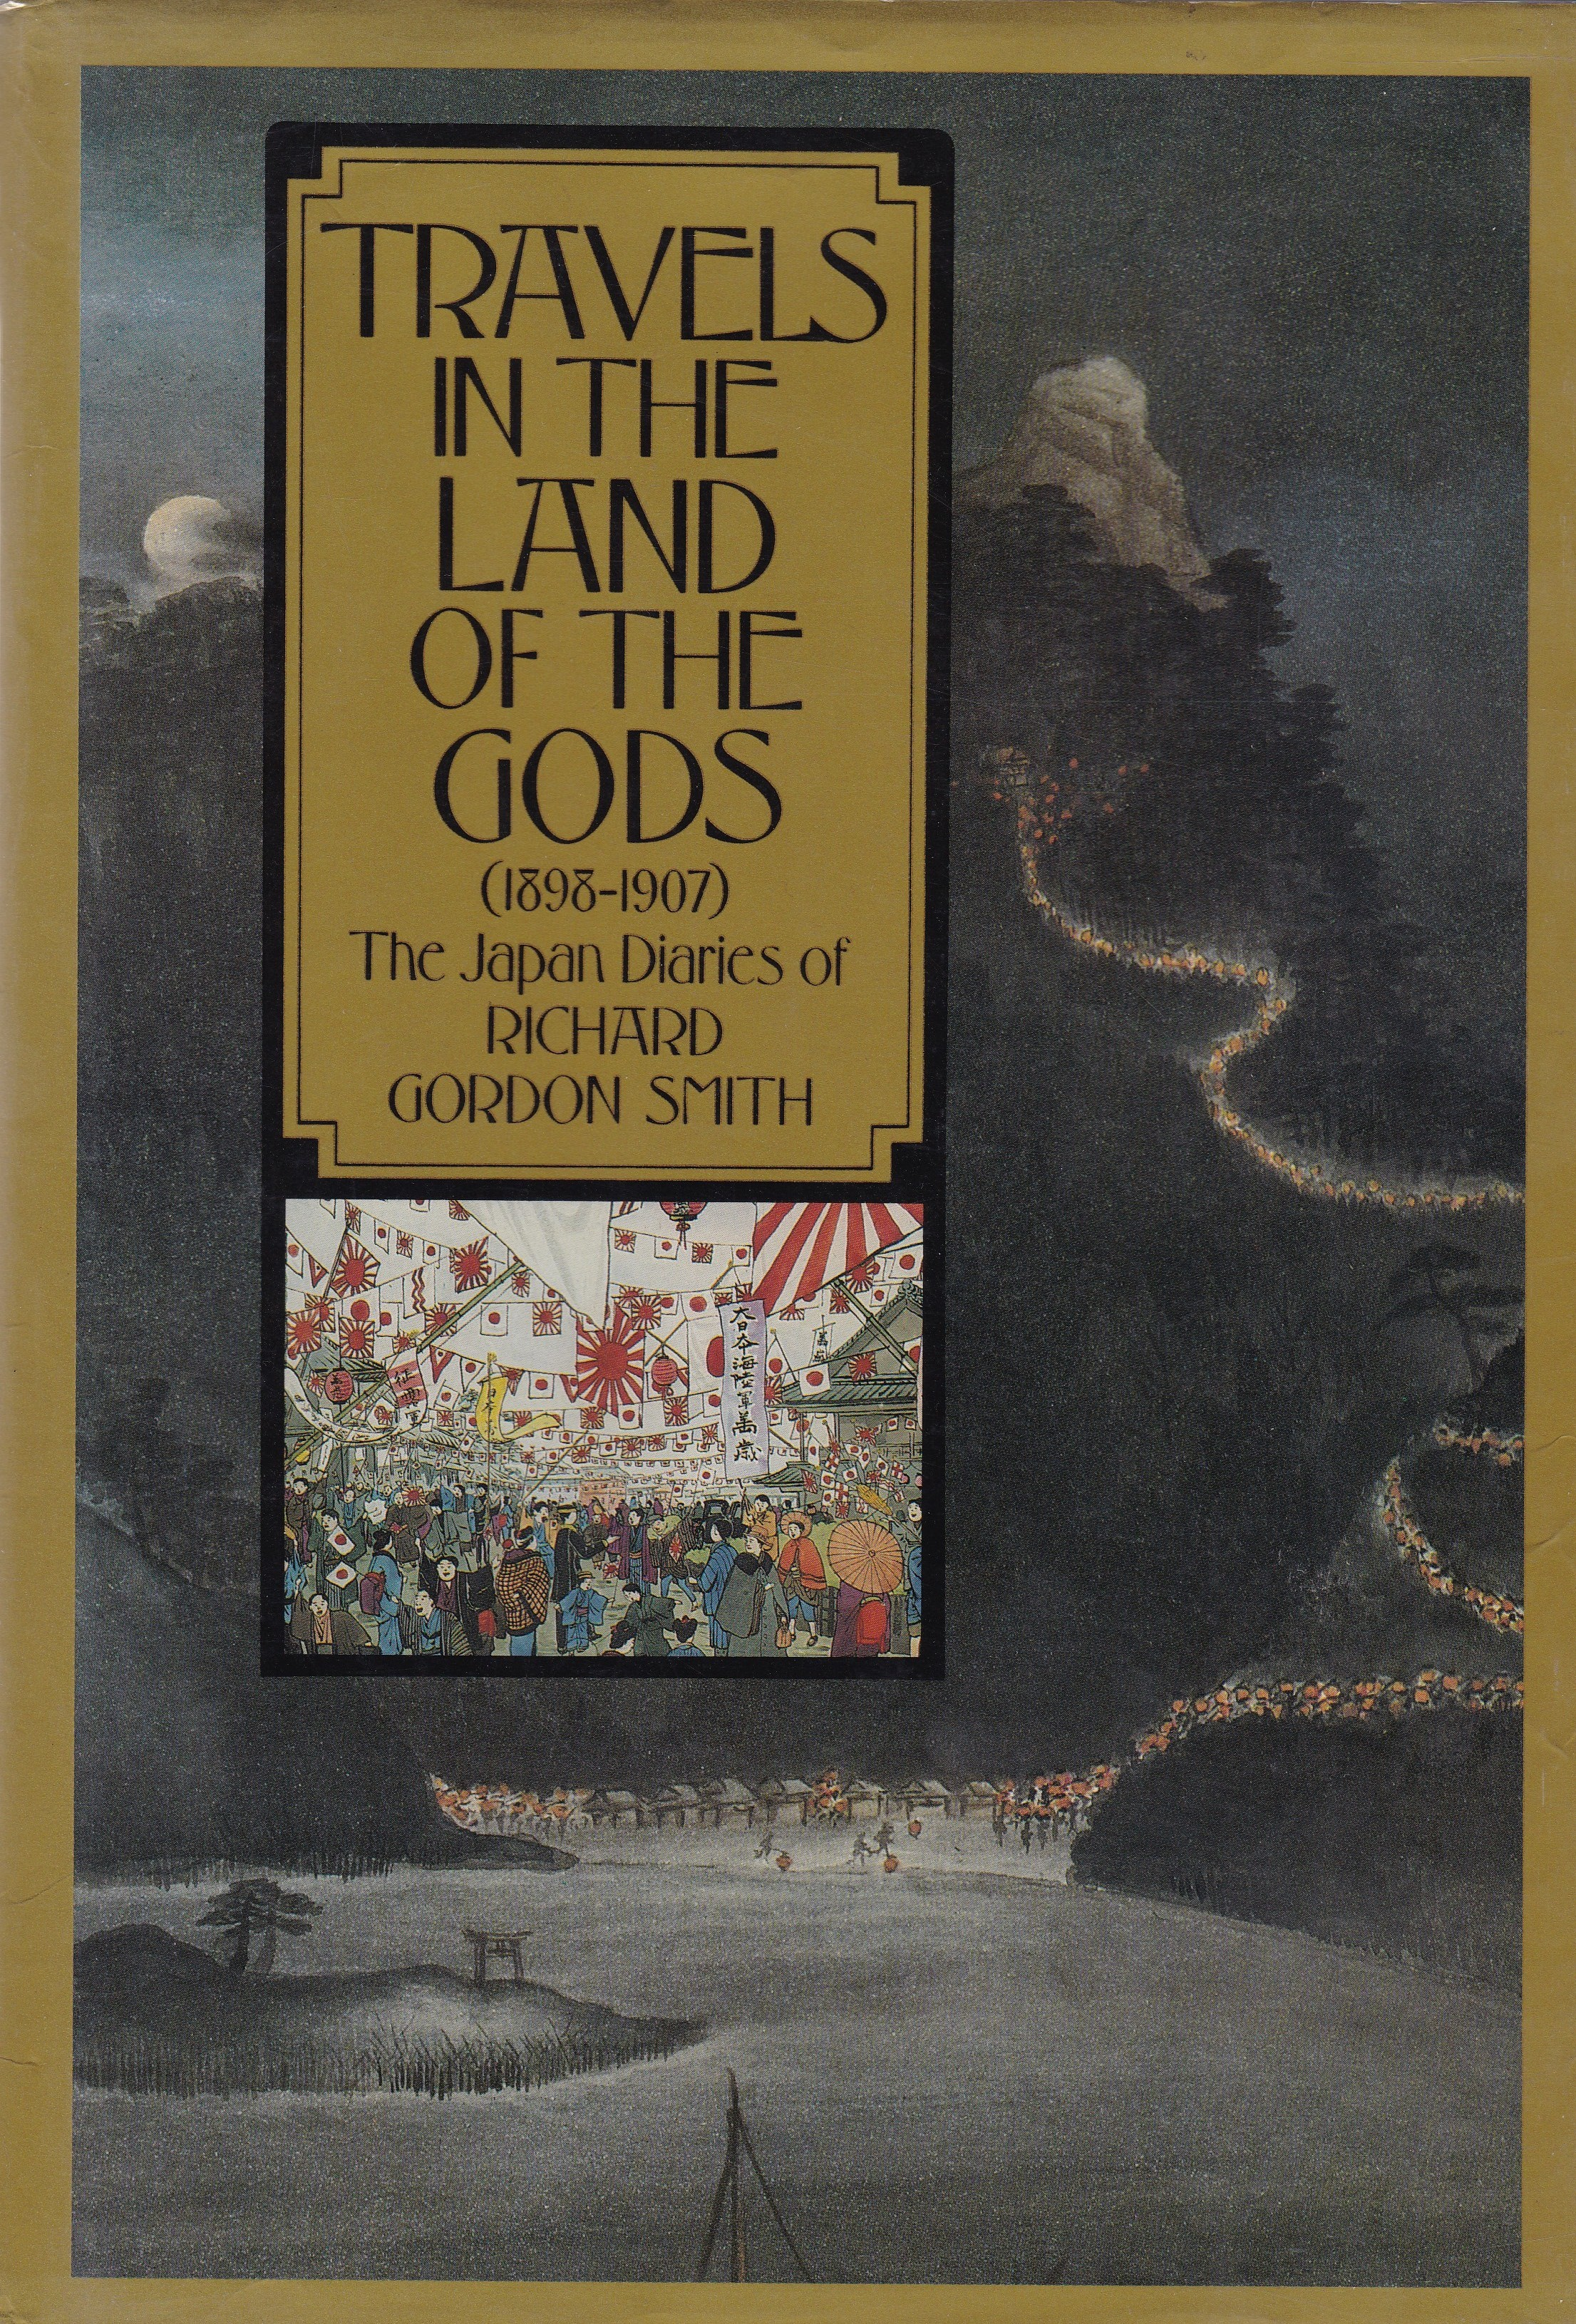 Travels in the Land of the Gods, 1898-1907: The Japan Diaries of Richard Gordon Smith